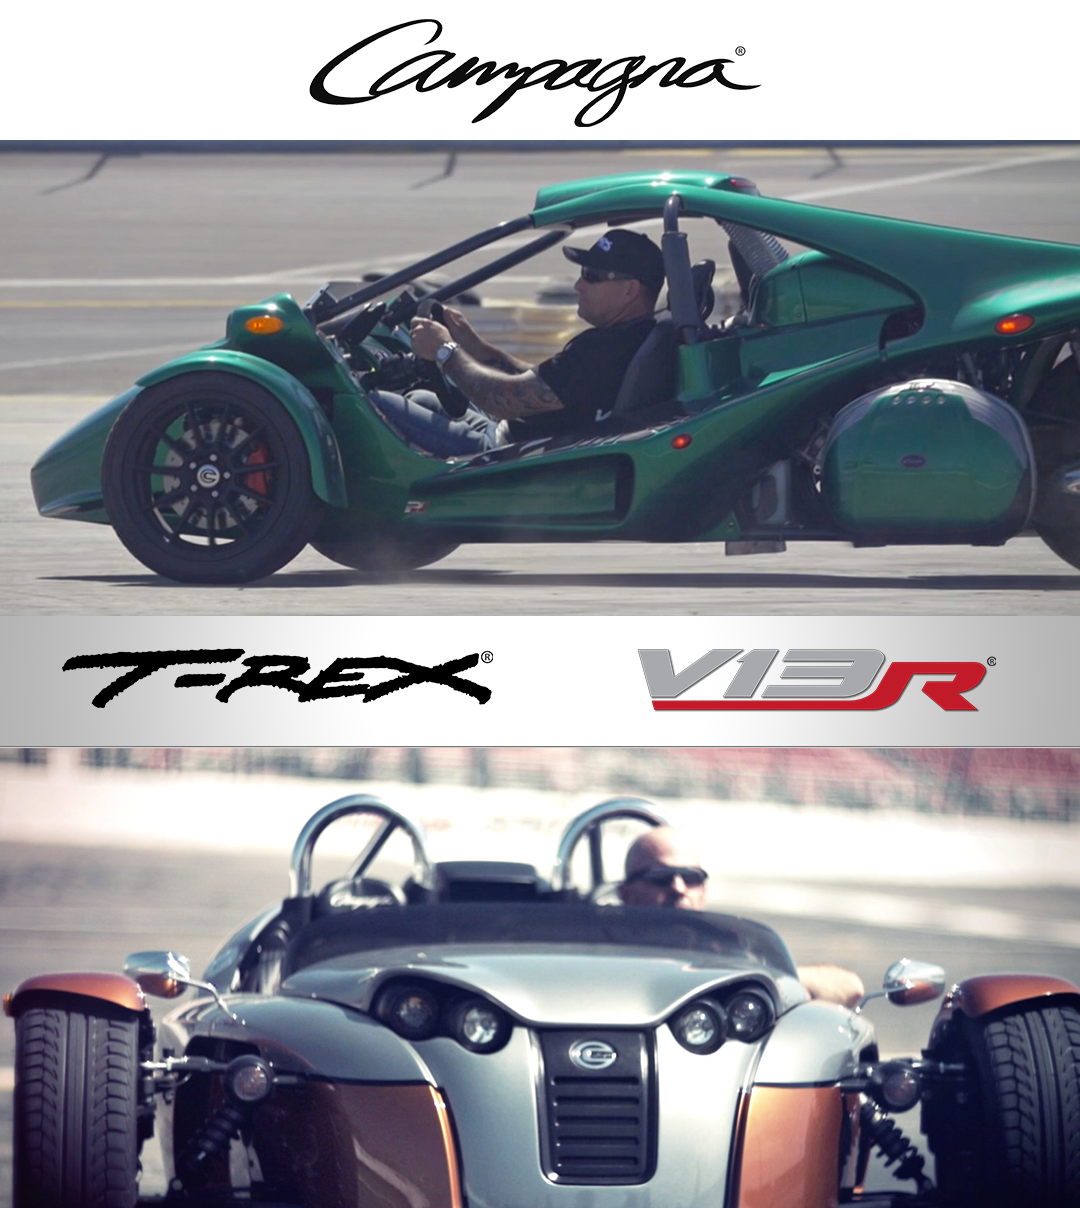 Win A Day Behind The Wheel Of A Campagna Vehicle (T-REX Or V13R)